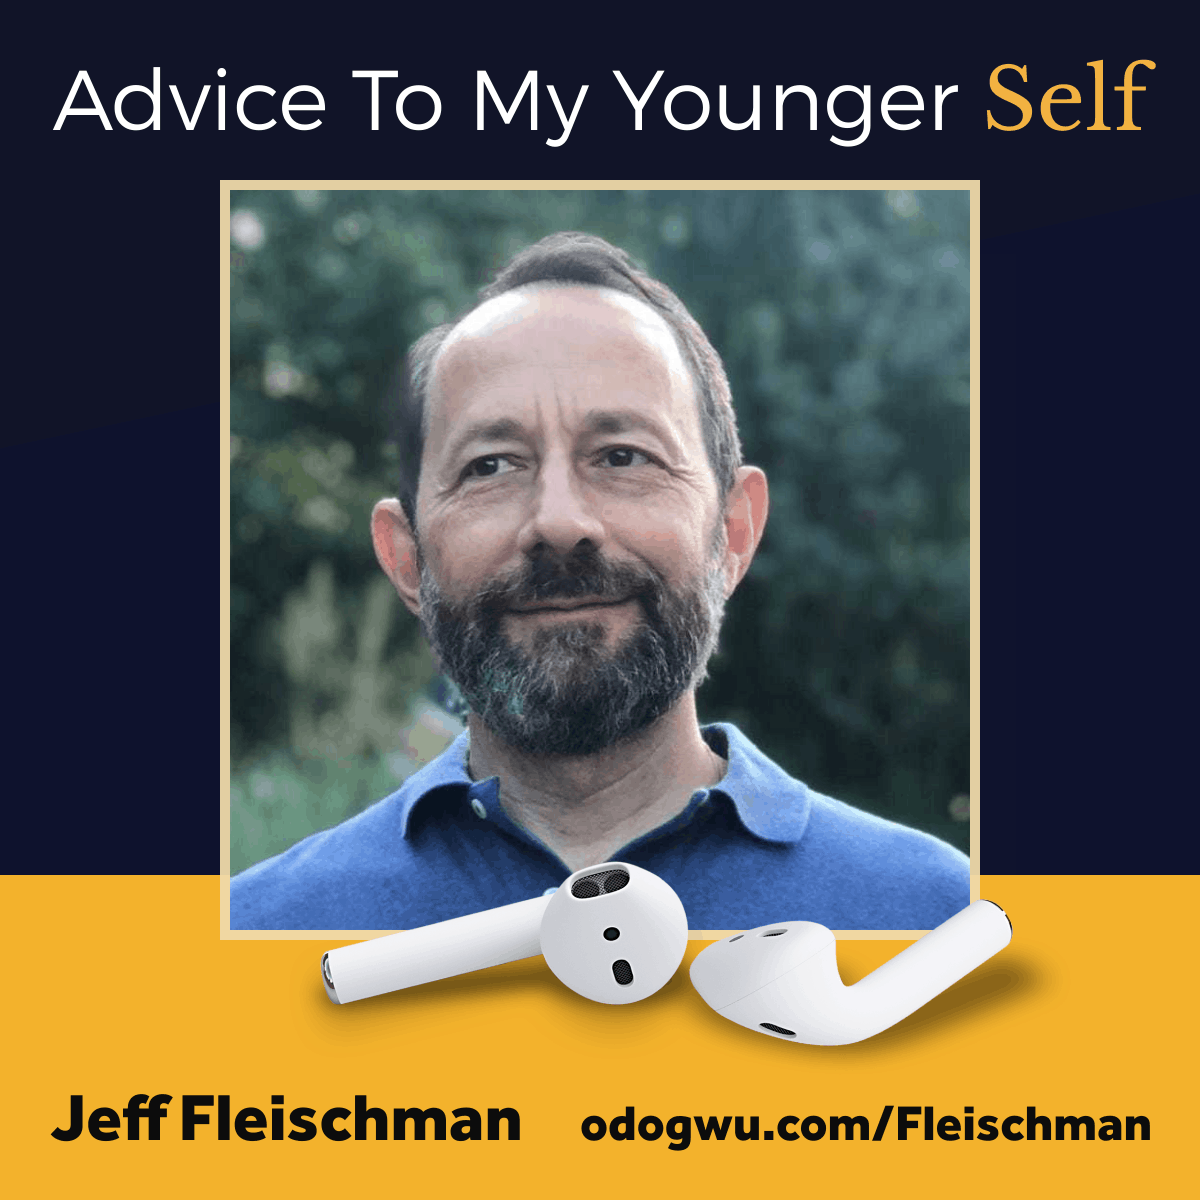 Advice To My Younger Self with Jeff Fleischman